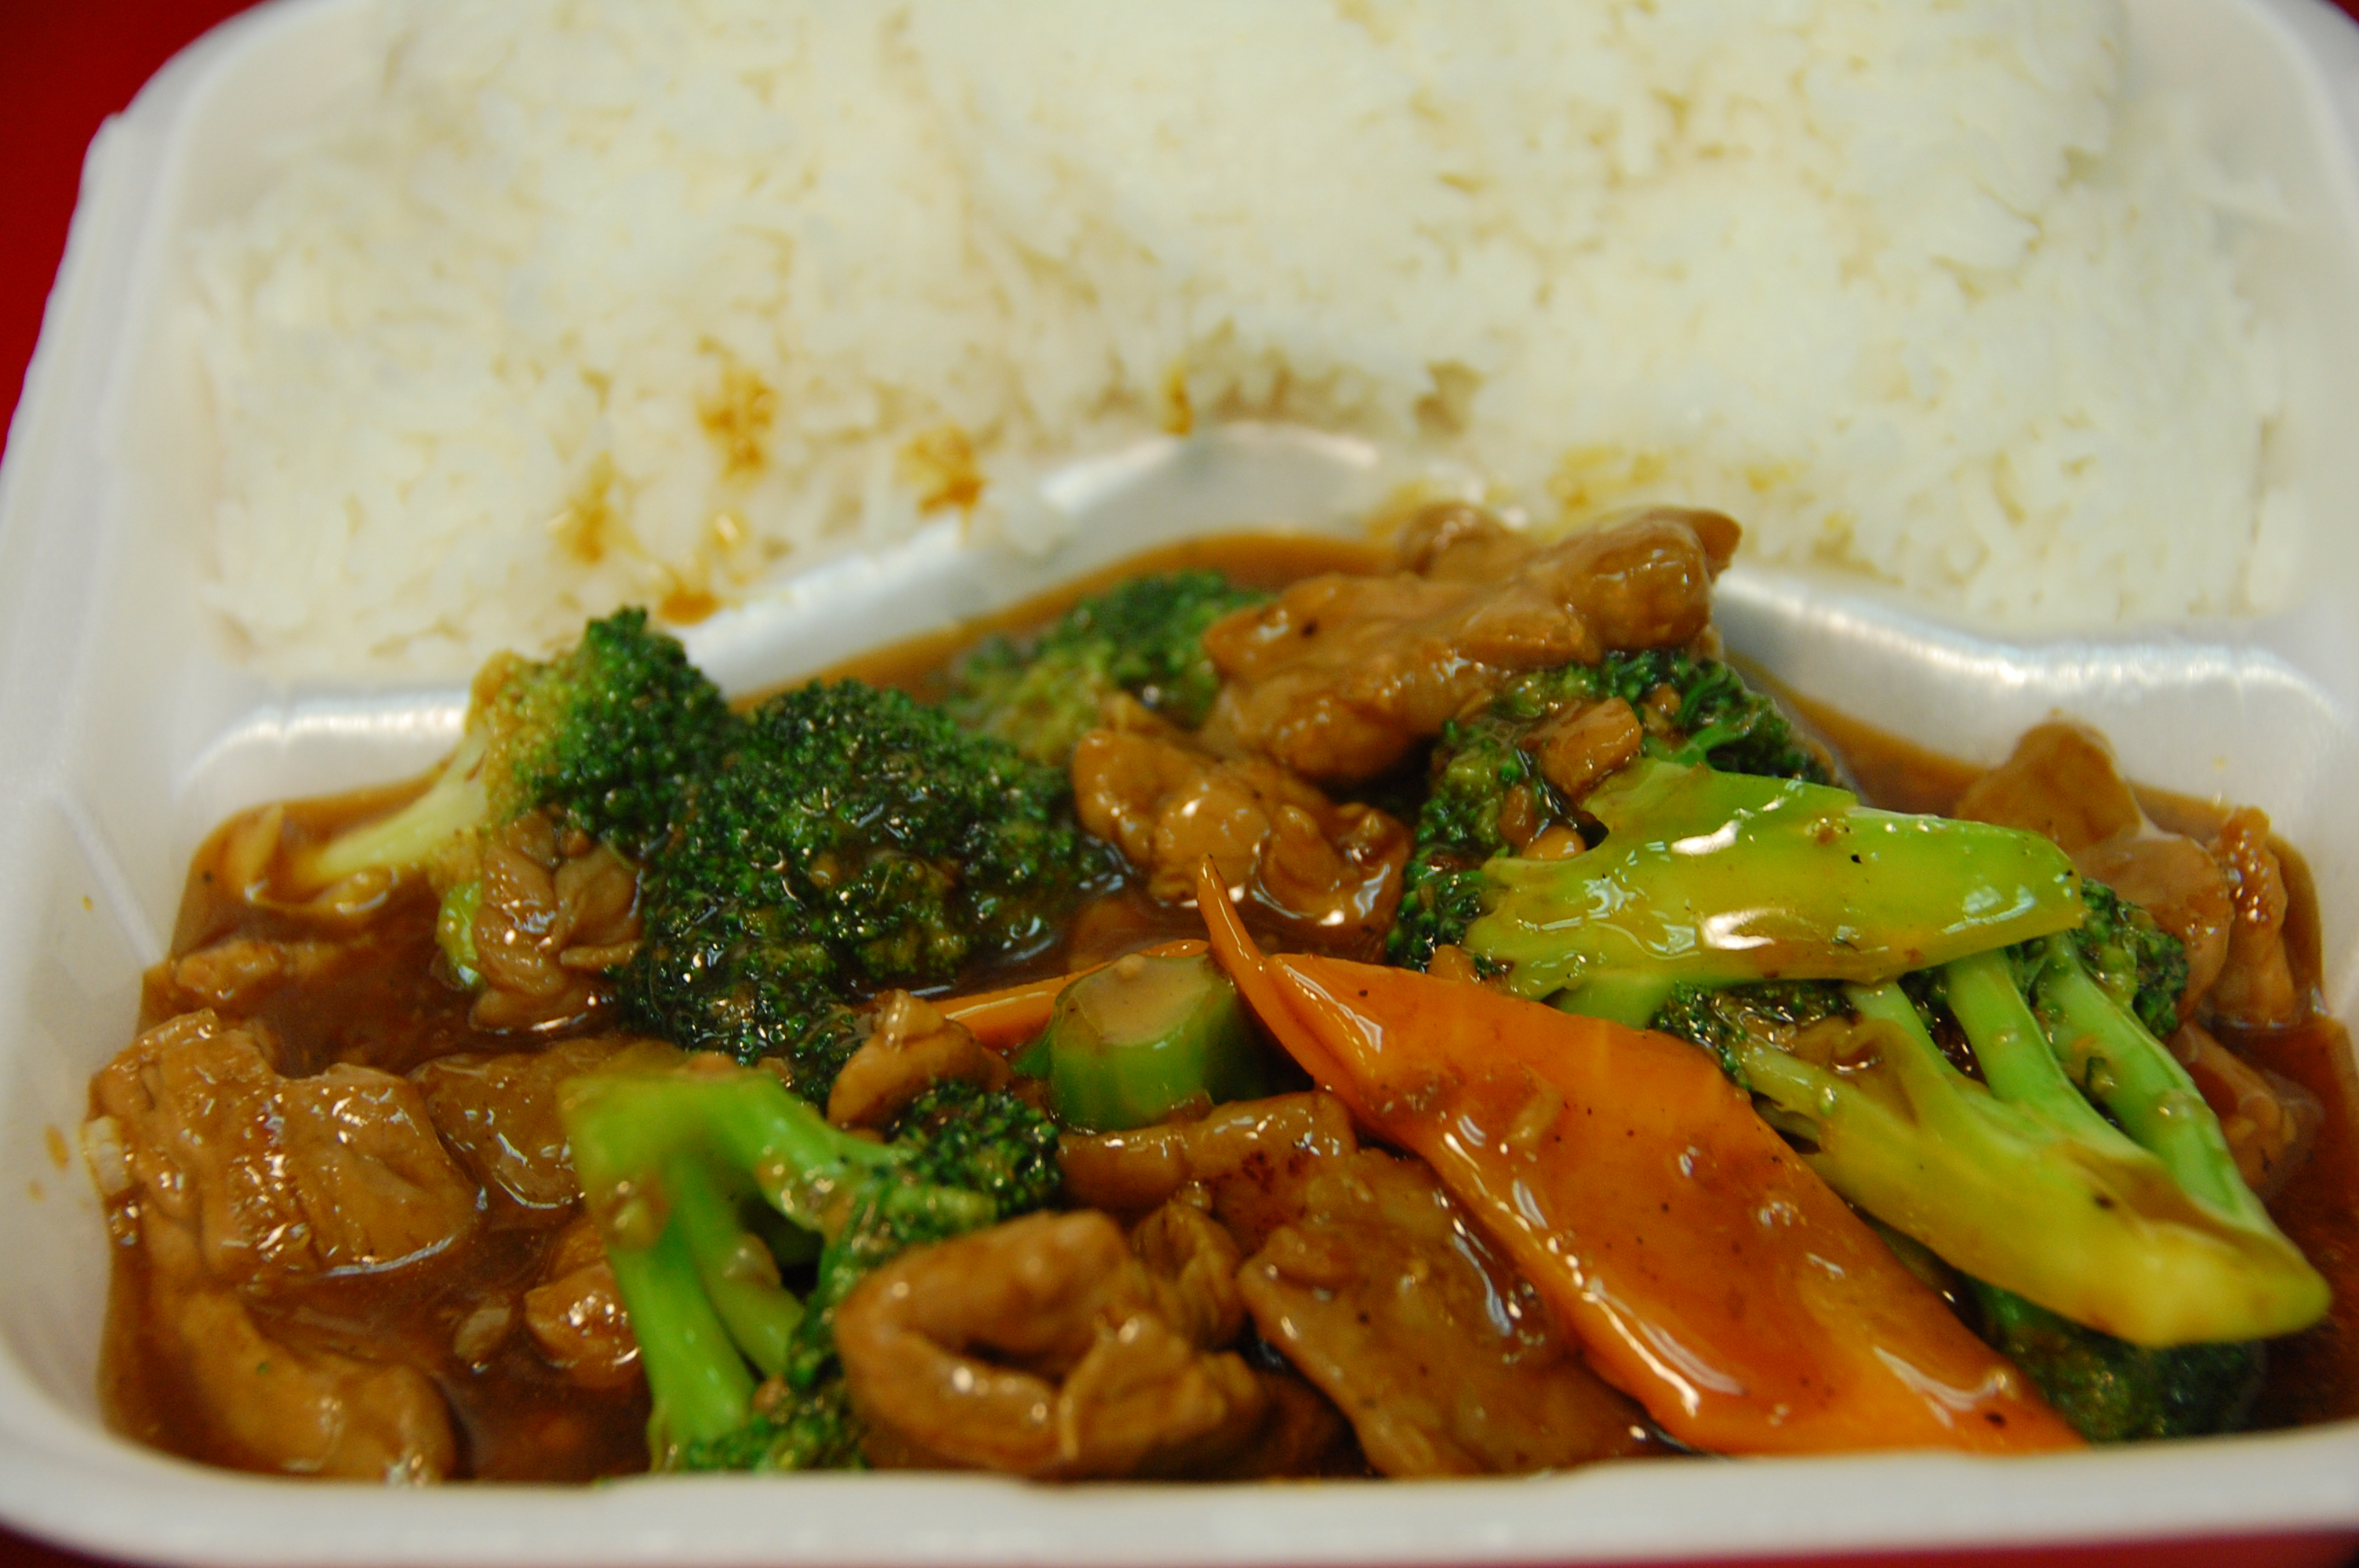 rice and beef with broccoli